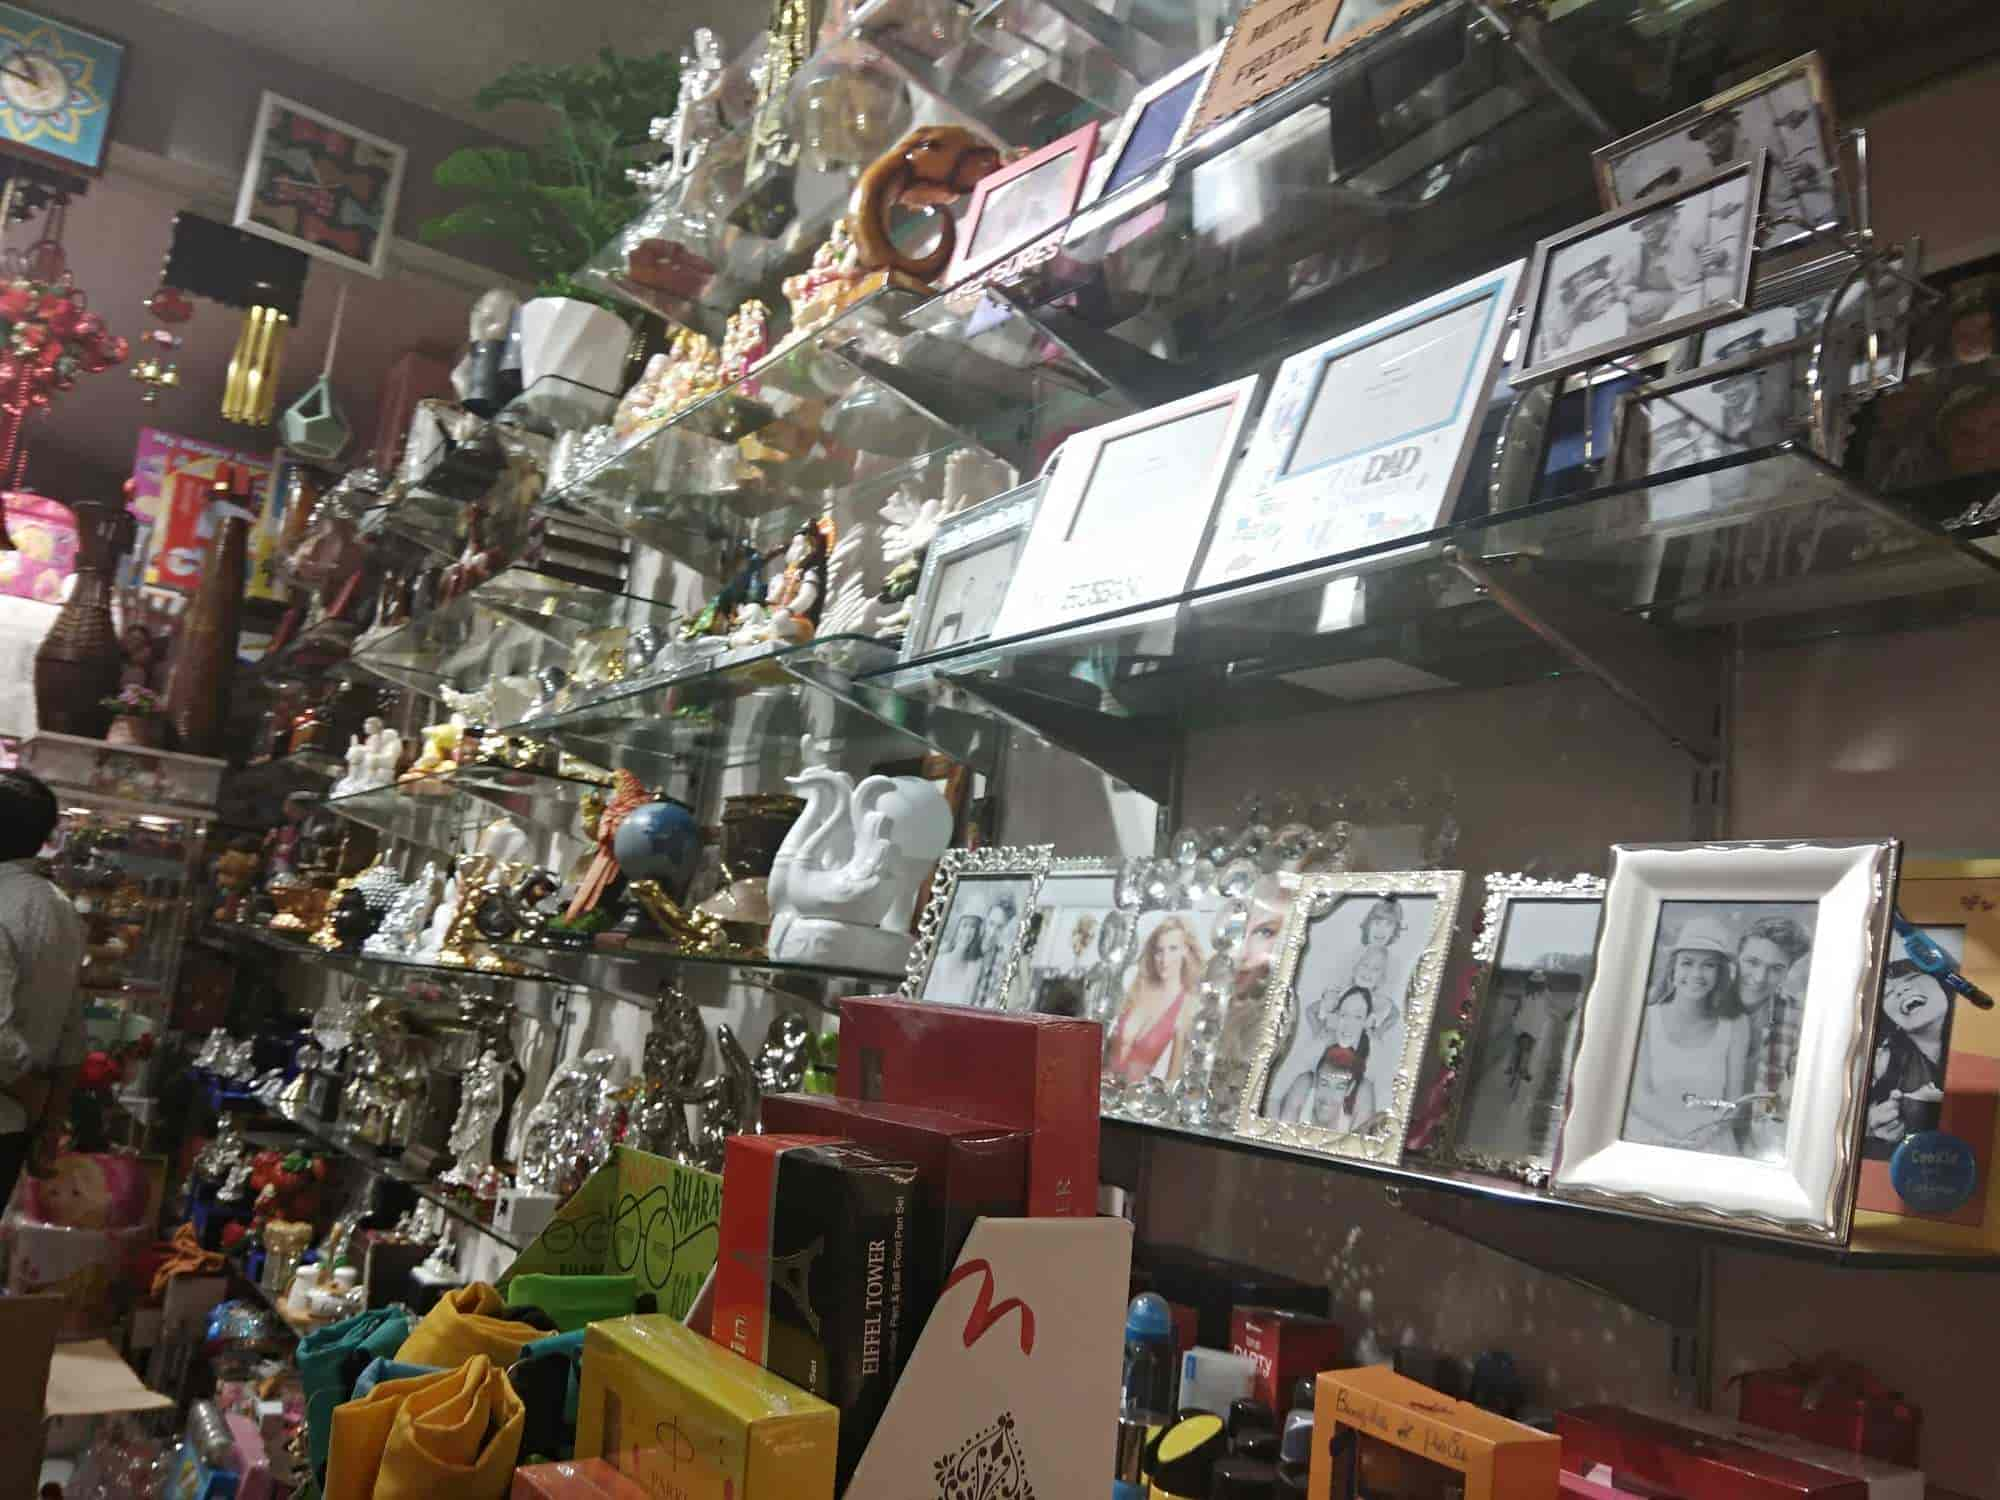 Archies greet n gift photos west punjabi bagh delhi pictures inside view of gifts shop archies greet n gift photos west punjabi bagh m4hsunfo